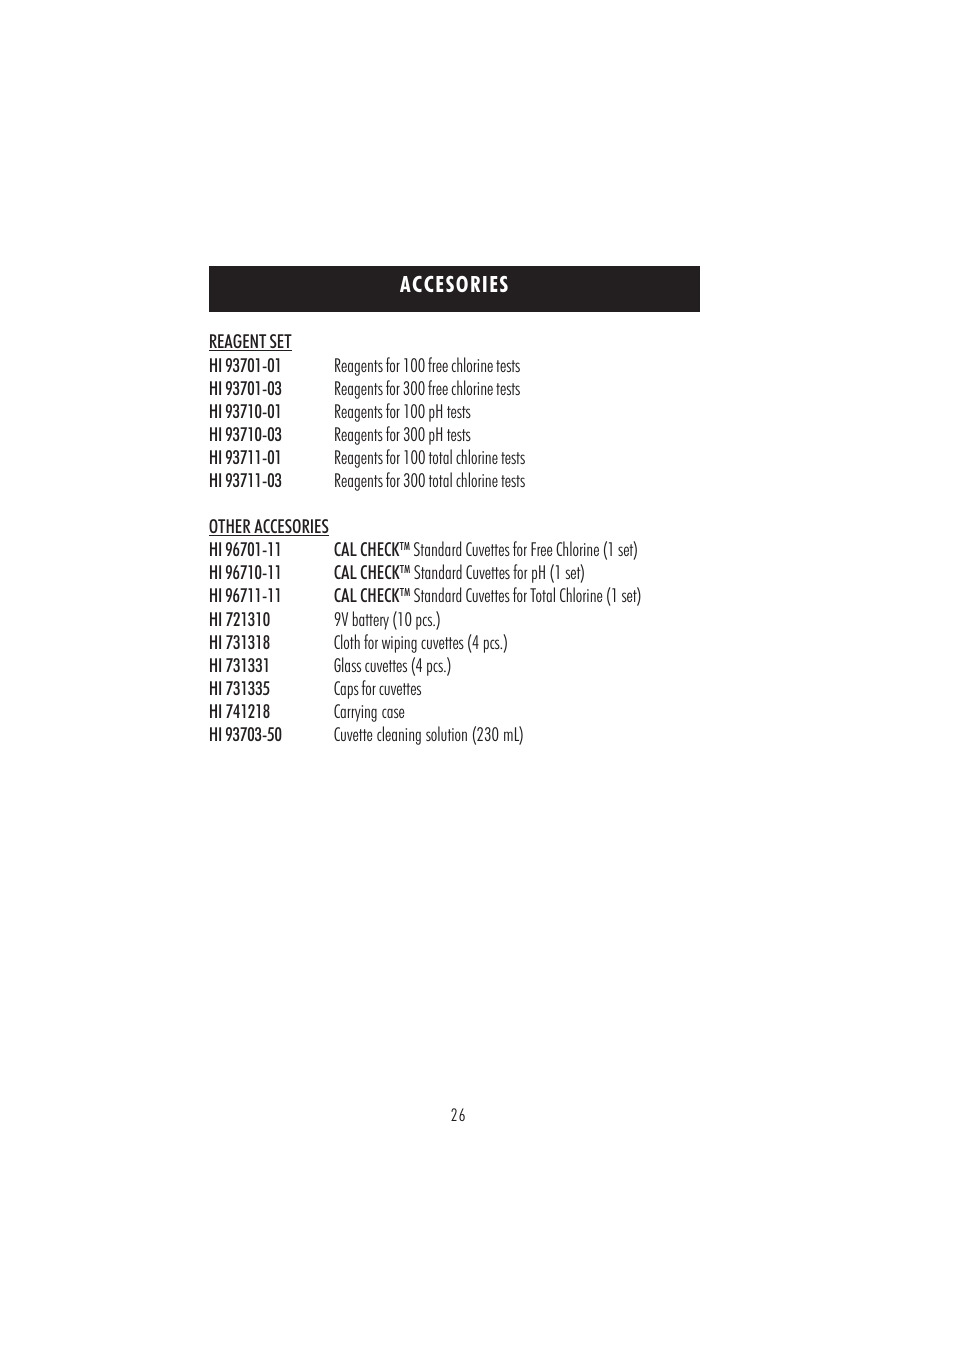 Accesories | Hanna Instruments HI 96710 User Manual | Page 26 / 28